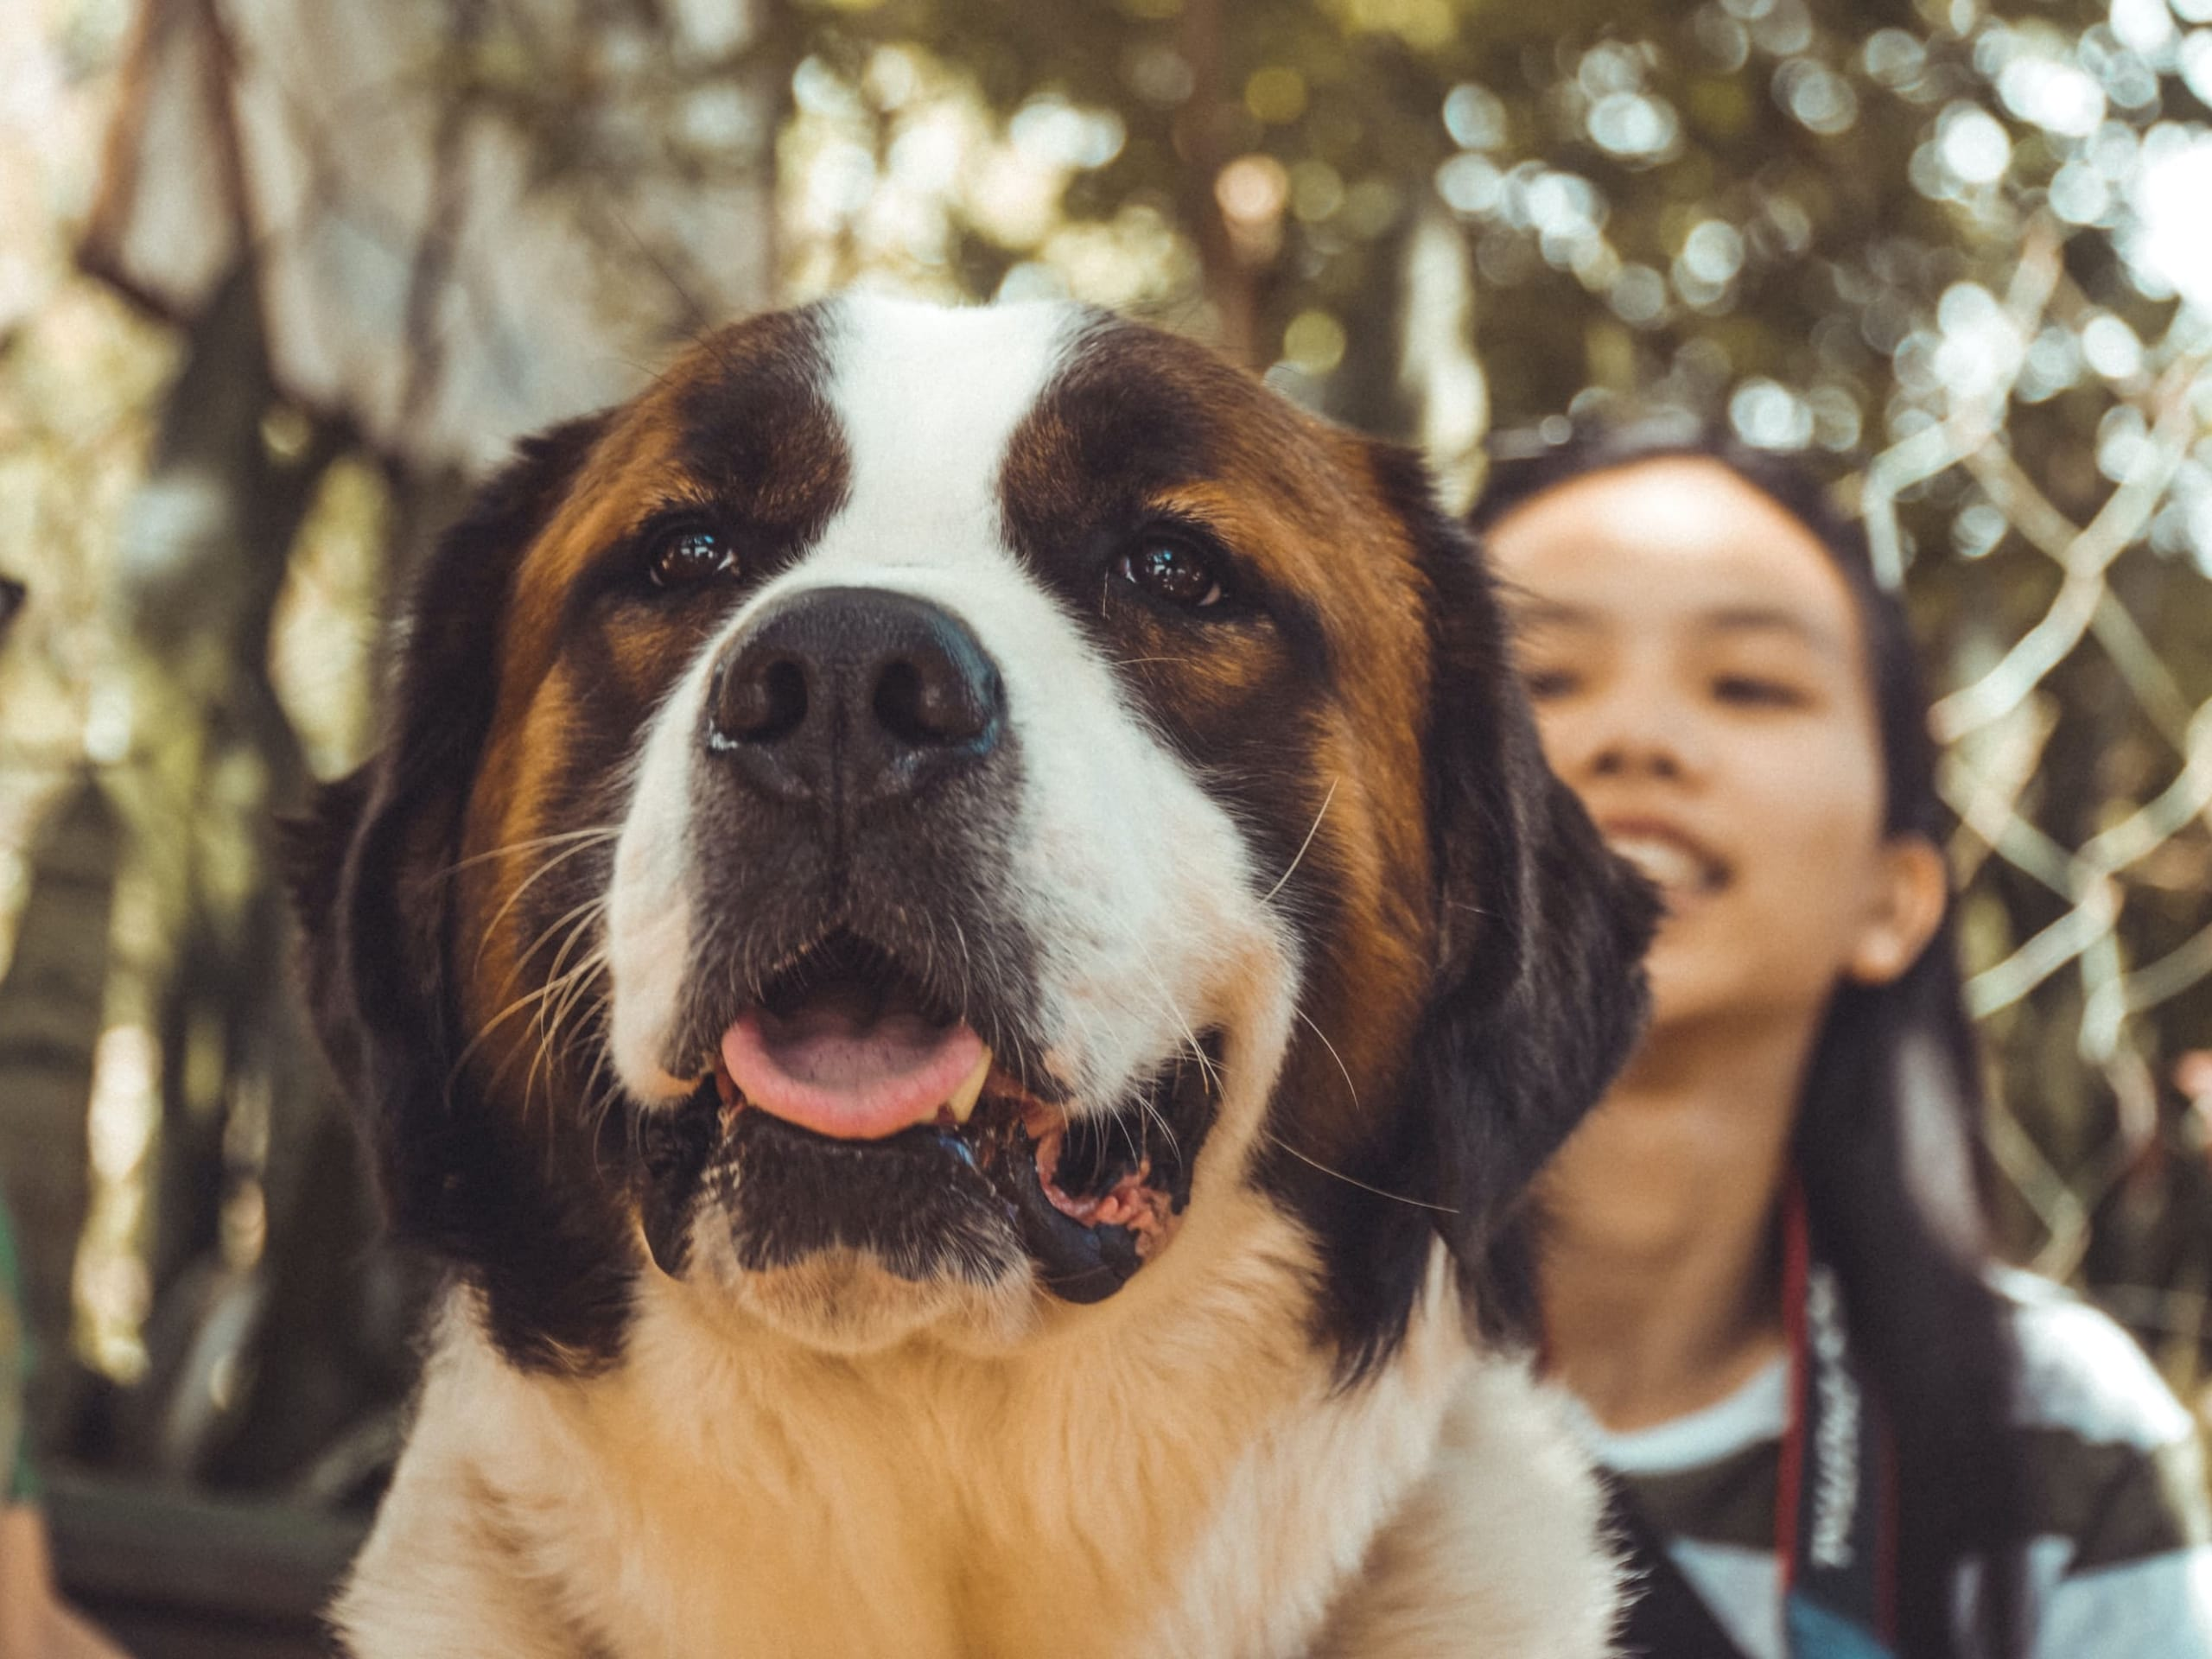 A close-up of a large dog smiling with smiling human friends behind.